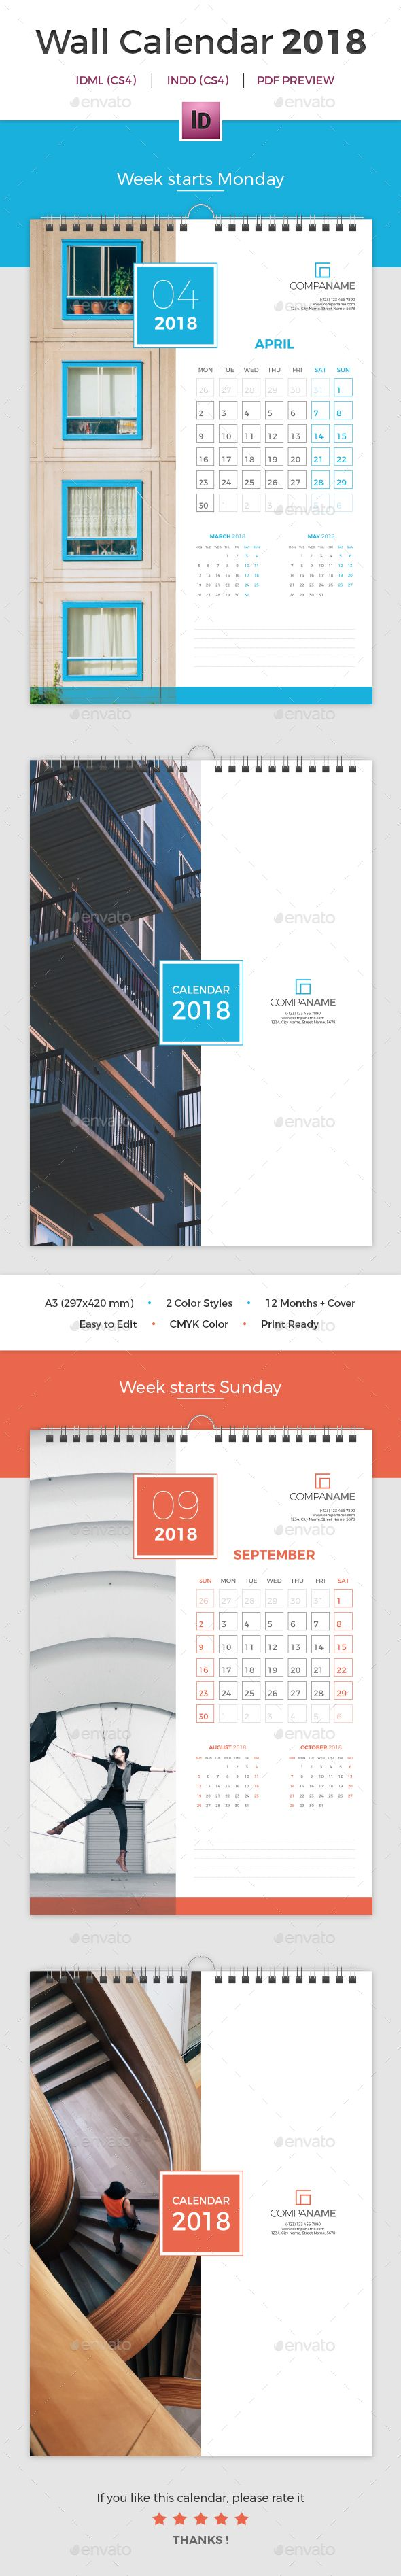 Wall Calendar 2018 Template InDesign INDD - 12 Months + Cover Design